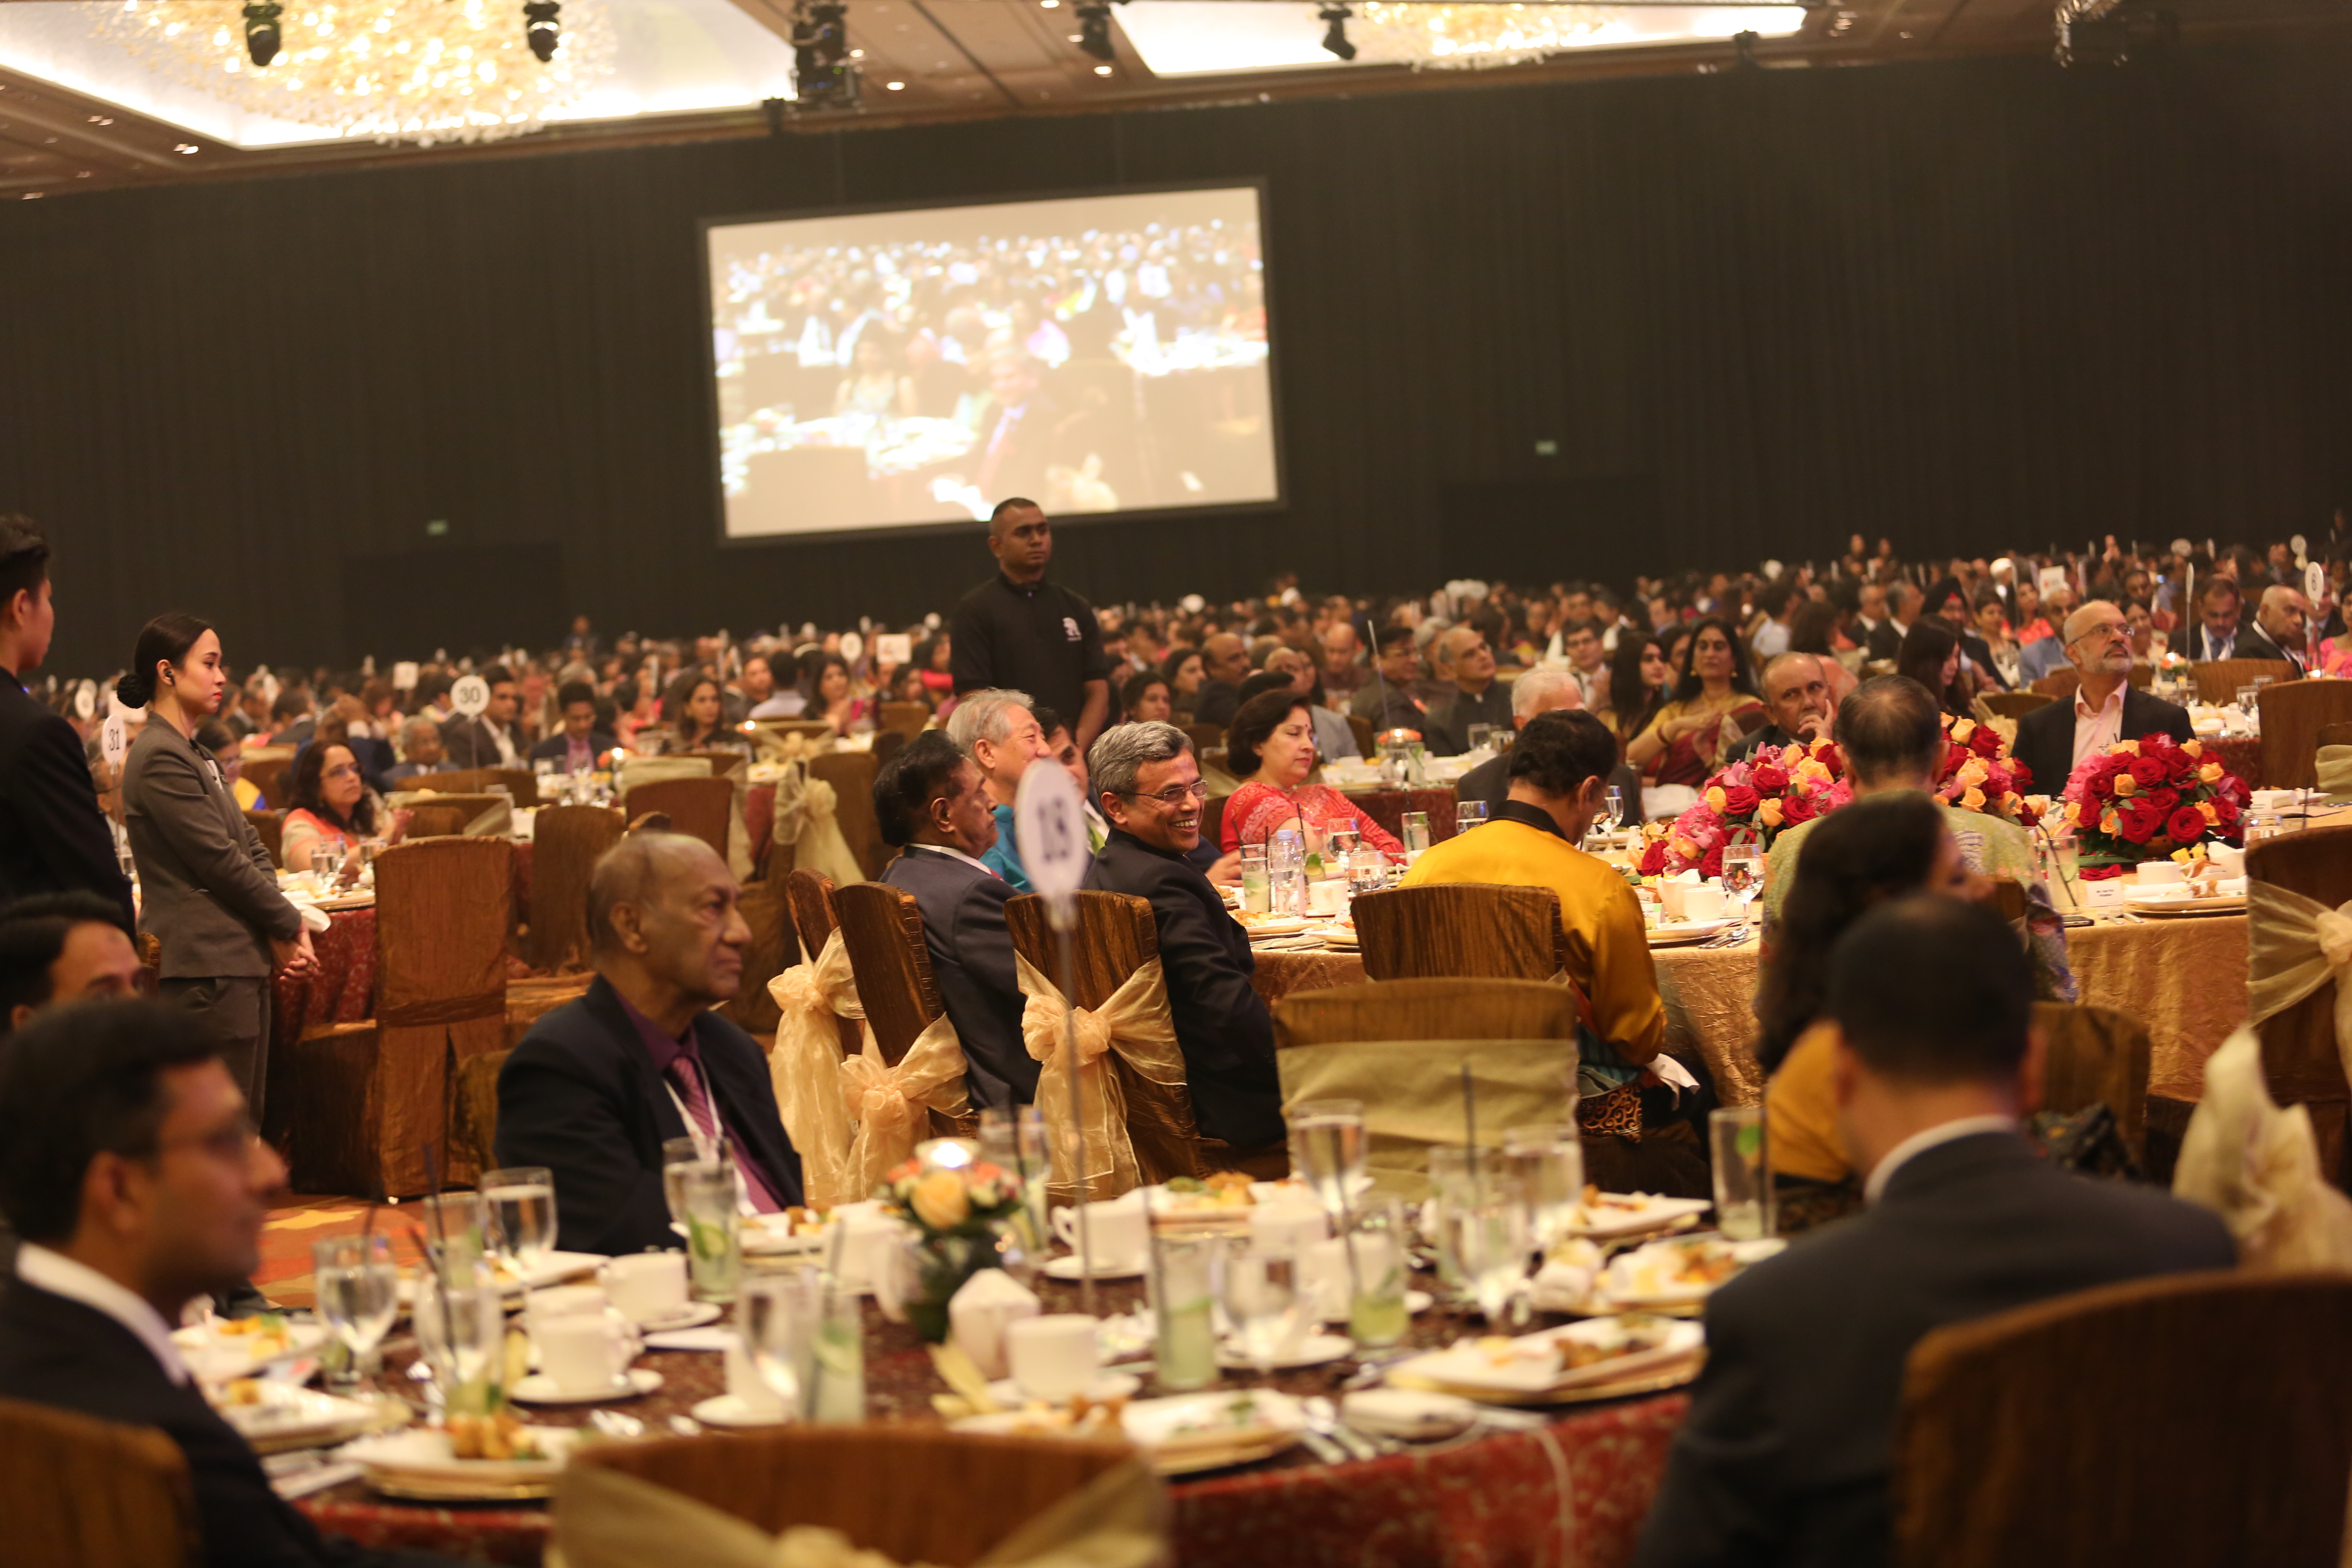 Over 3,000 people were present at the Marina Bay Sands Grand Ballroom for the EAM's speech and the gala dinner